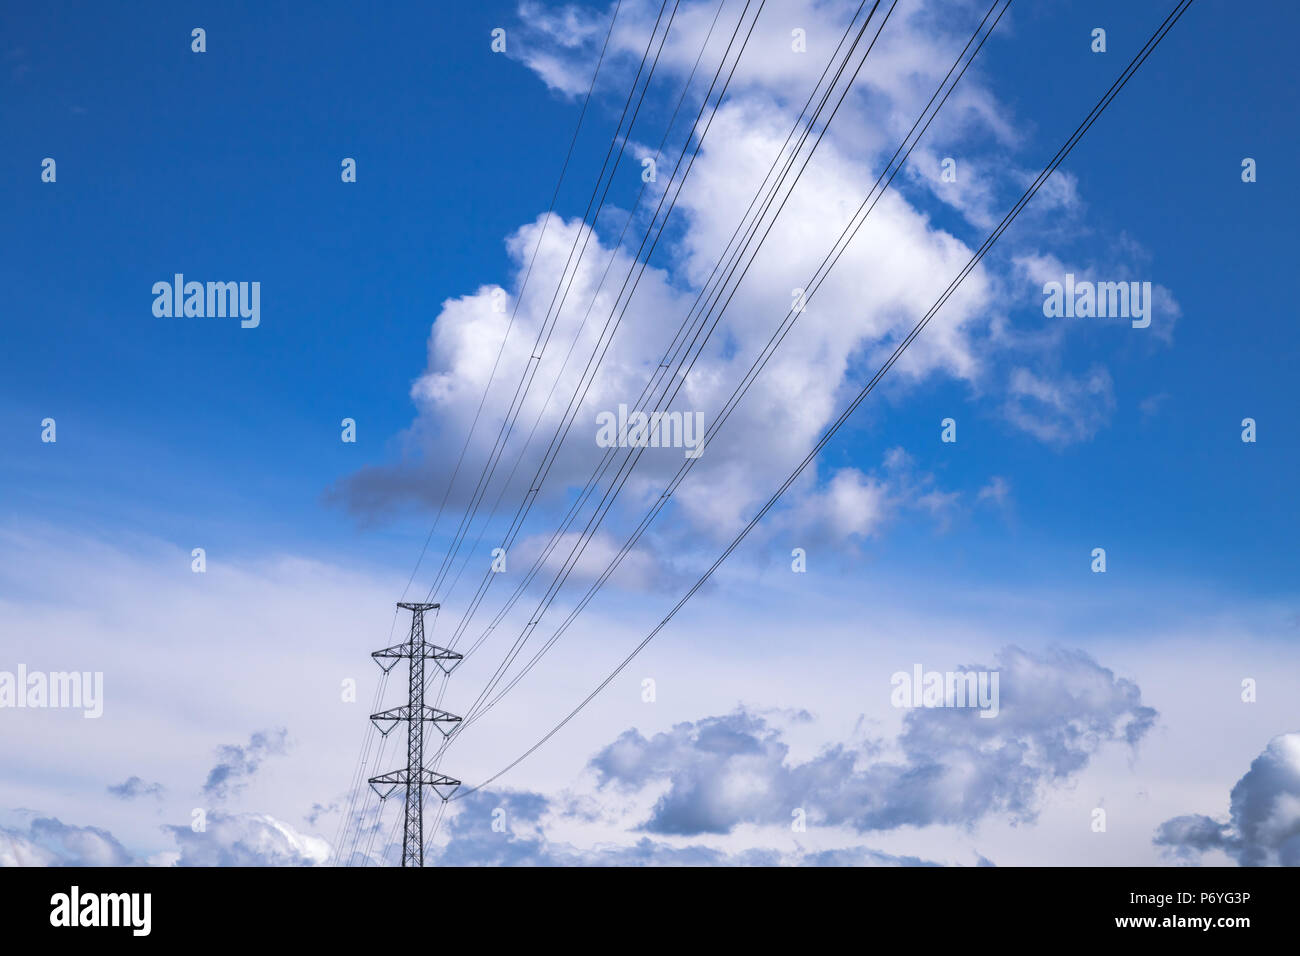 Electric cabels / powerlines and pylon in front of deep blue sky with clouds - Stock Image